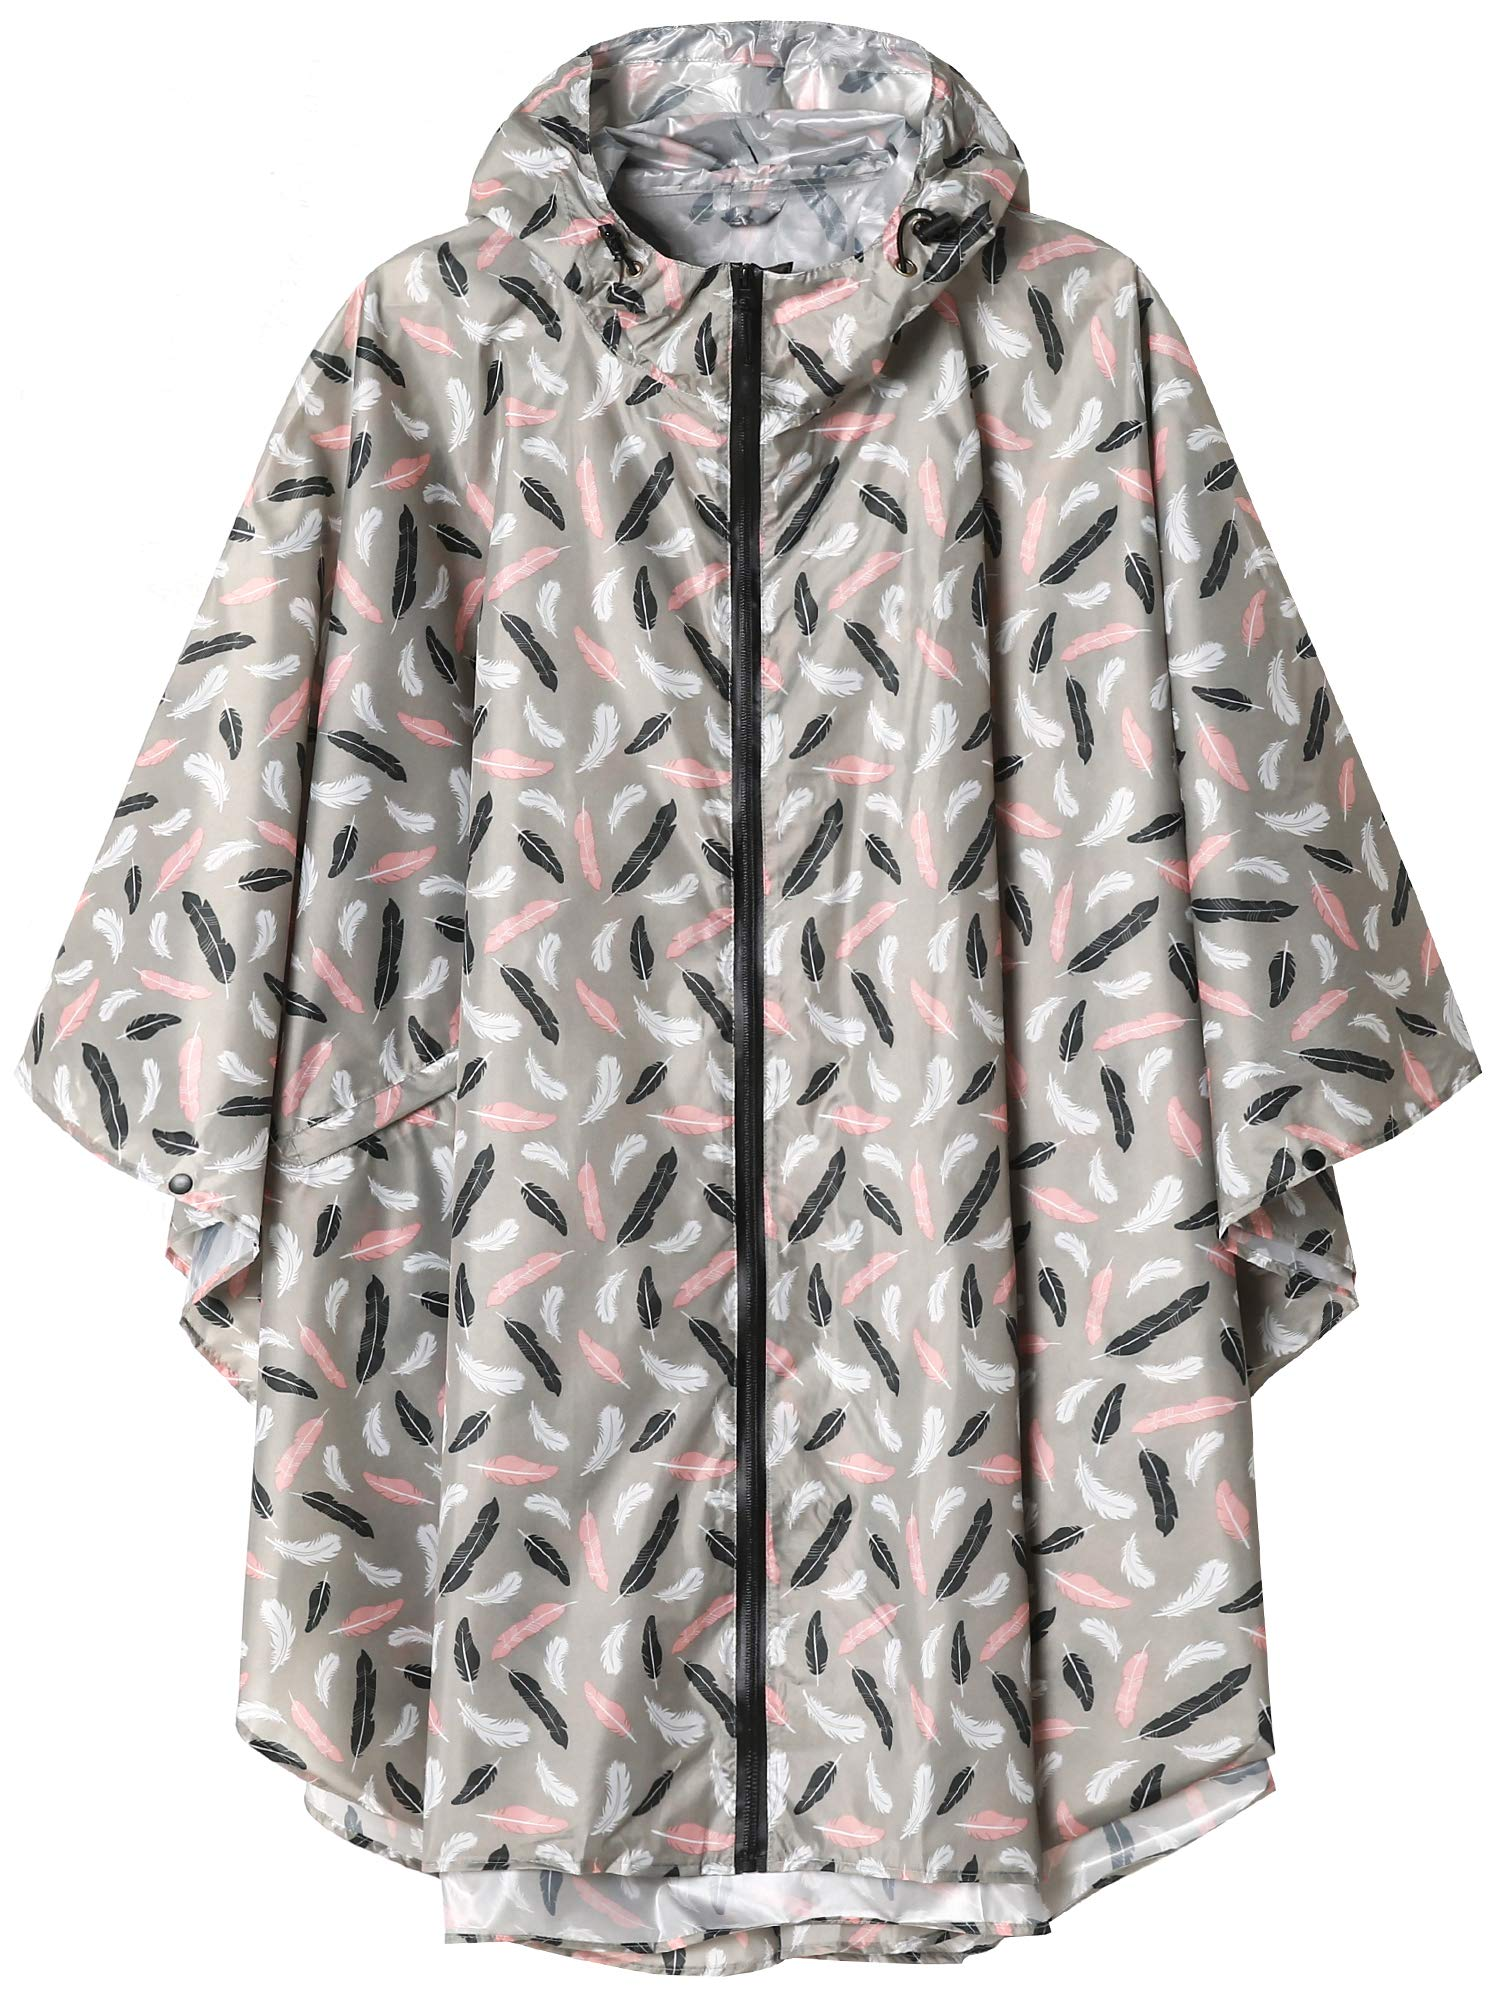 Unisex Waterproof Rain Poncho Coat with Pockets Grey Feather by SaphiRose